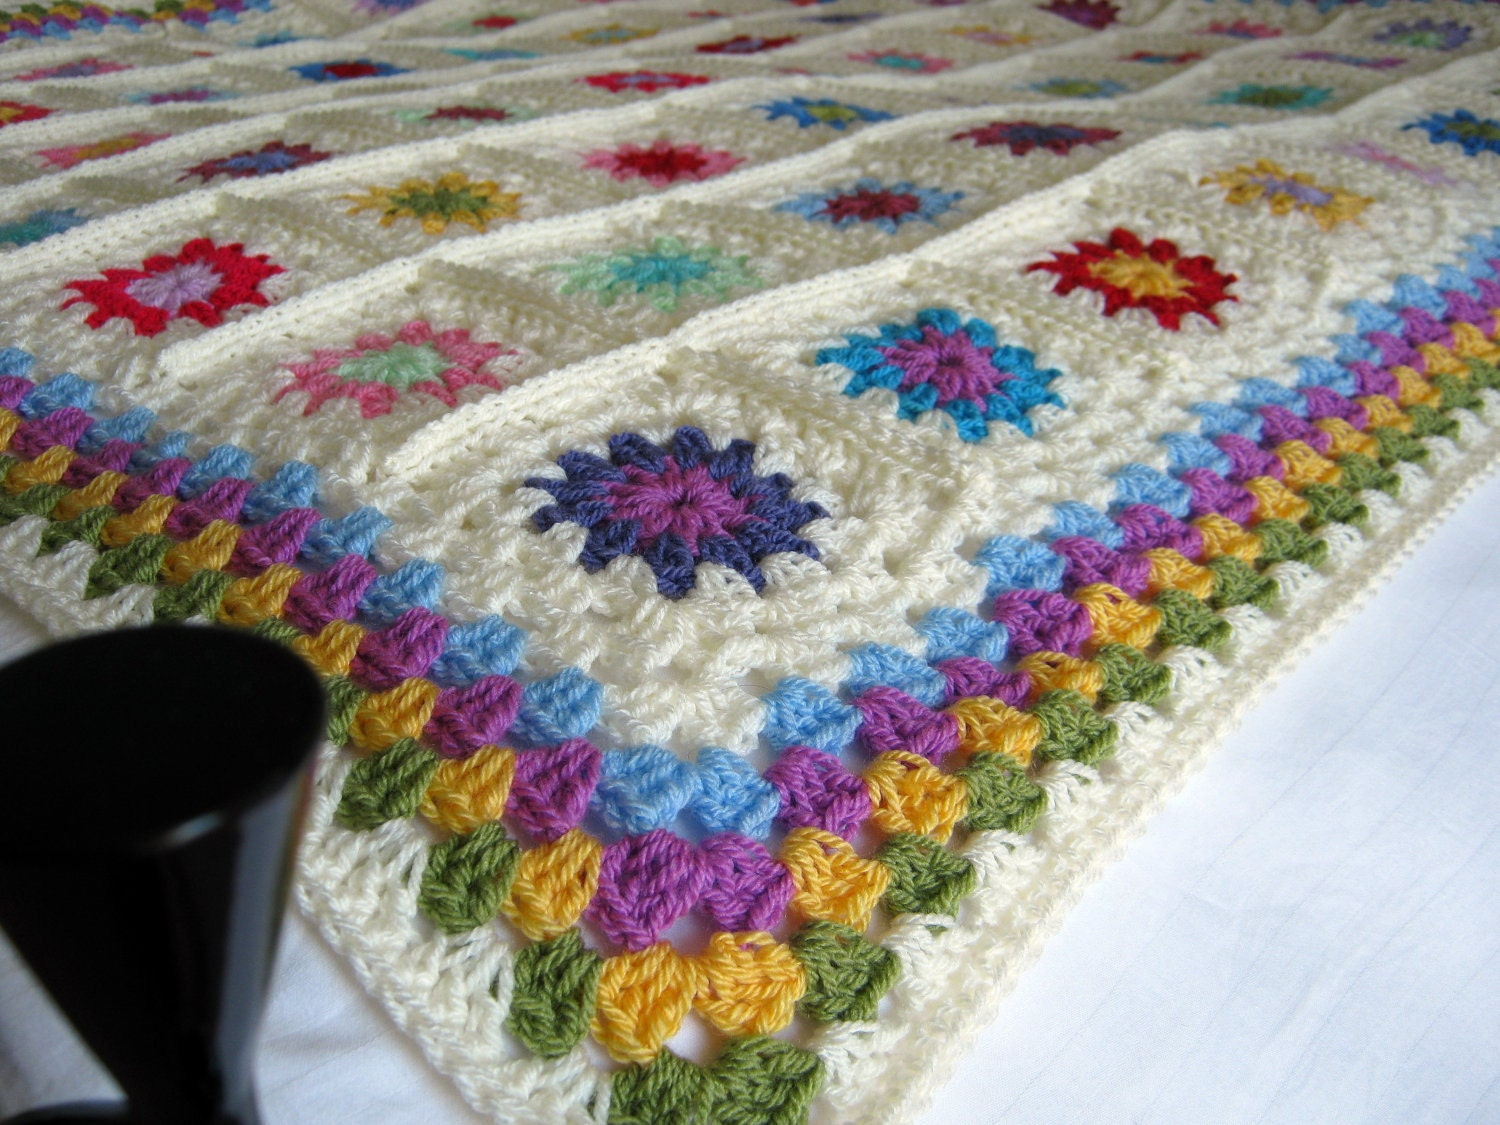 Free Online Crochet Granny Square Patterns : Crochet Pattern For Granny Square Patterns Gallery